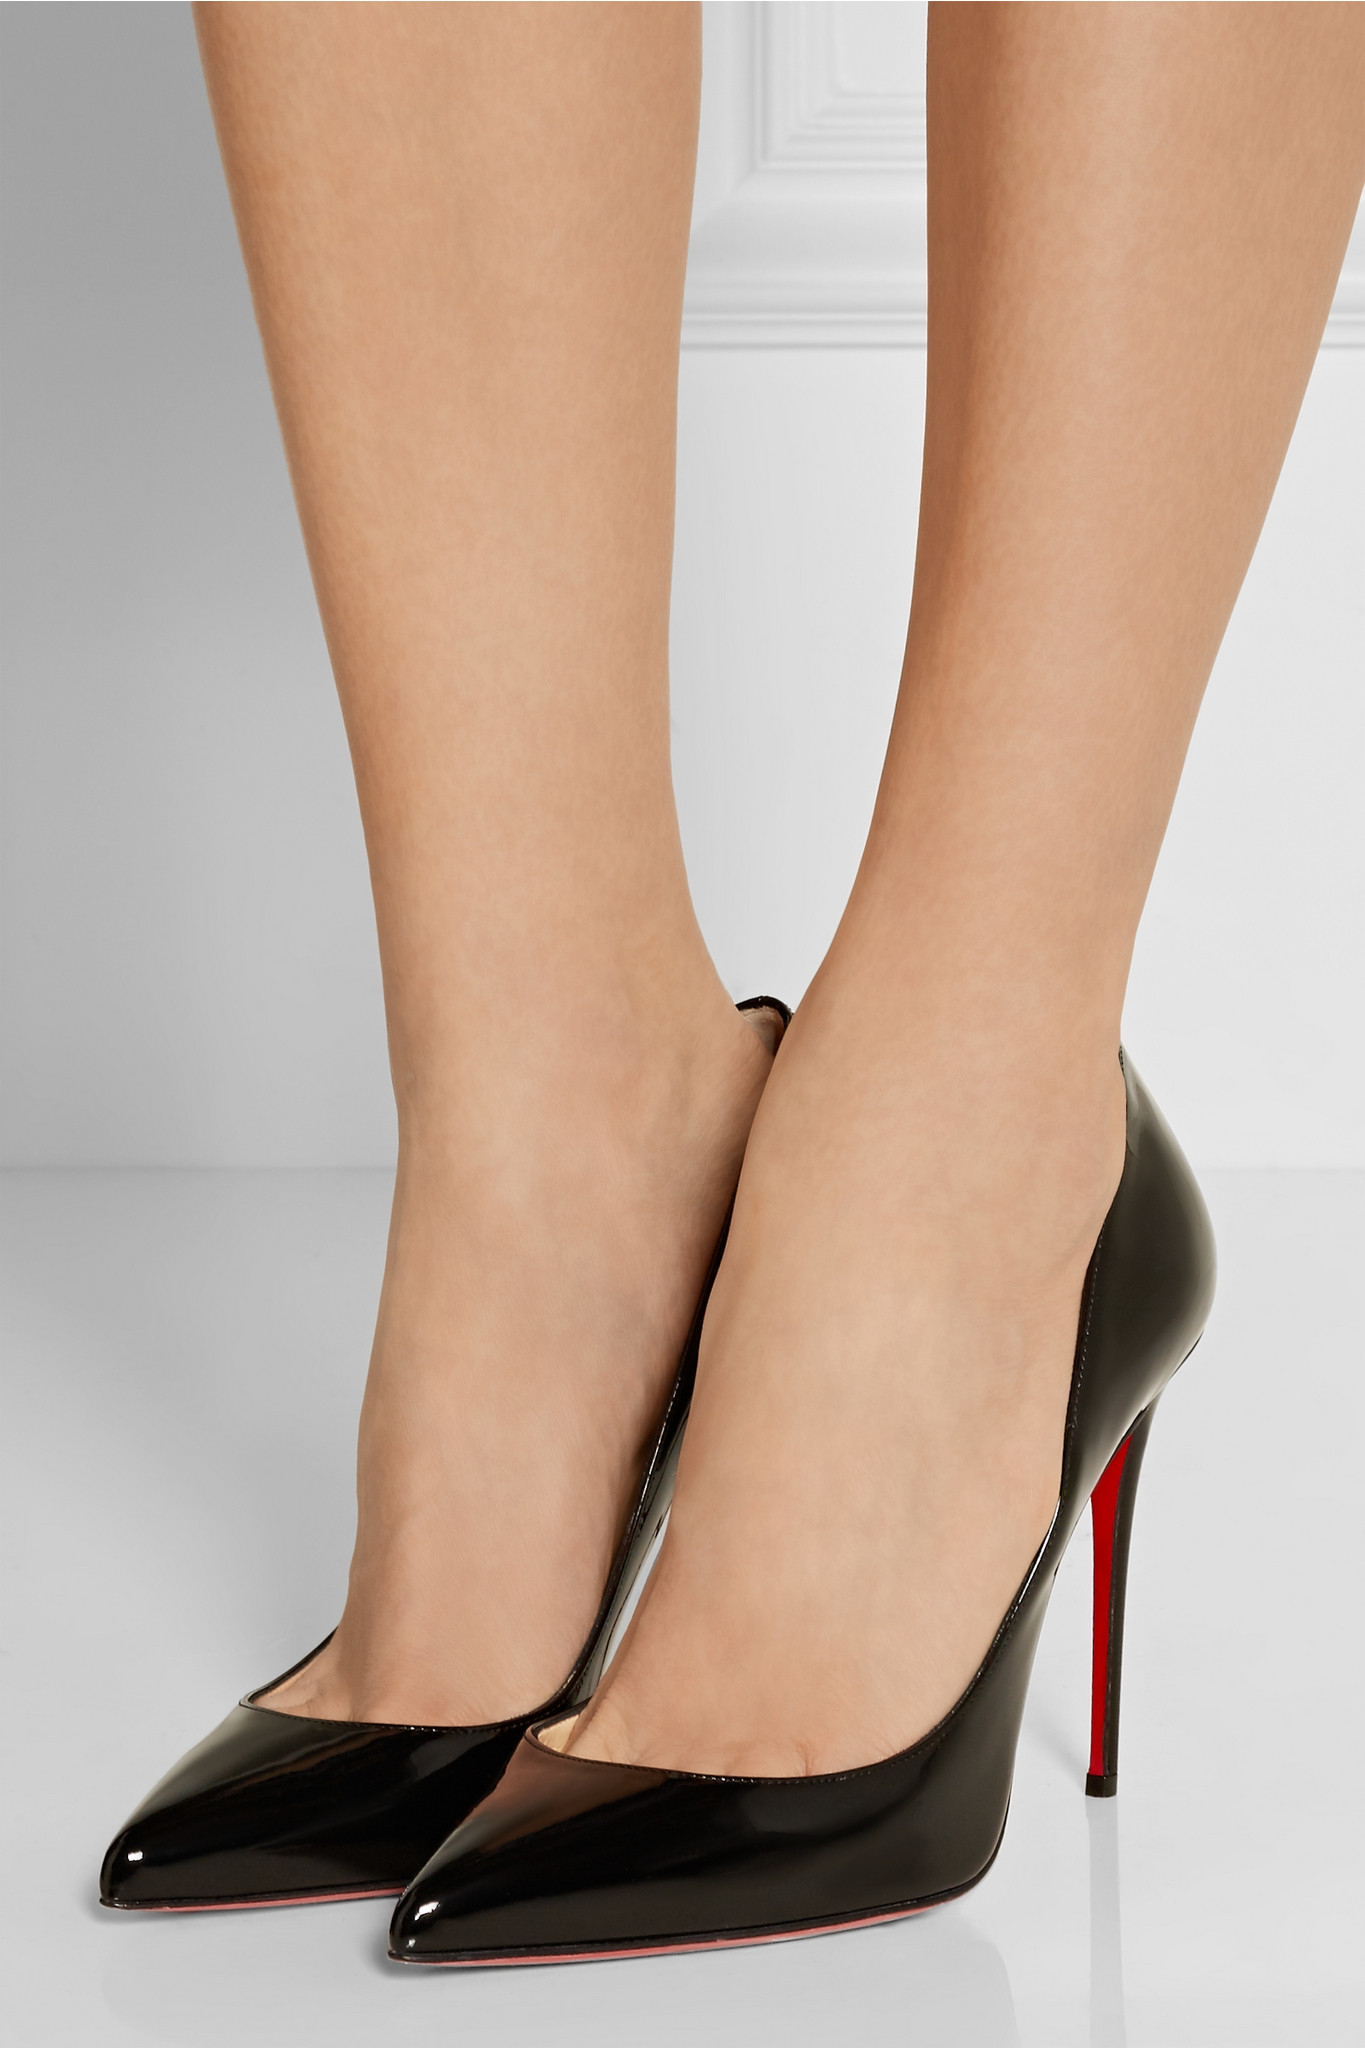 fe241b14315a Christian Louboutin Pigalle Follies 100 Patent-leather Pumps in ...